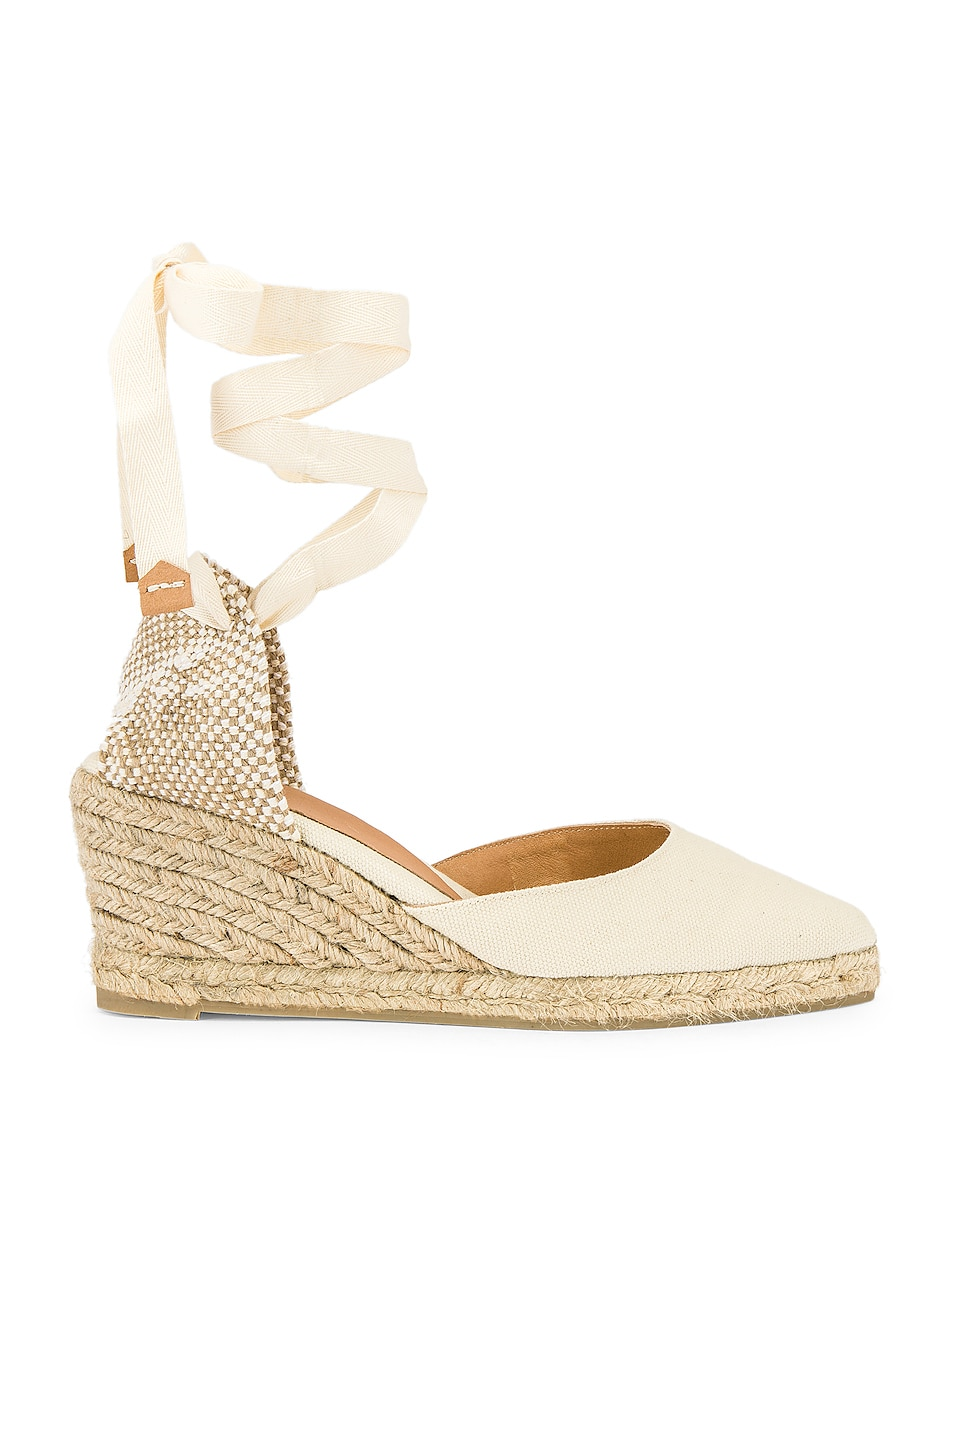 639242252c91 Image 1 of Castaner Joyce Espadrille in Ivory   Natural